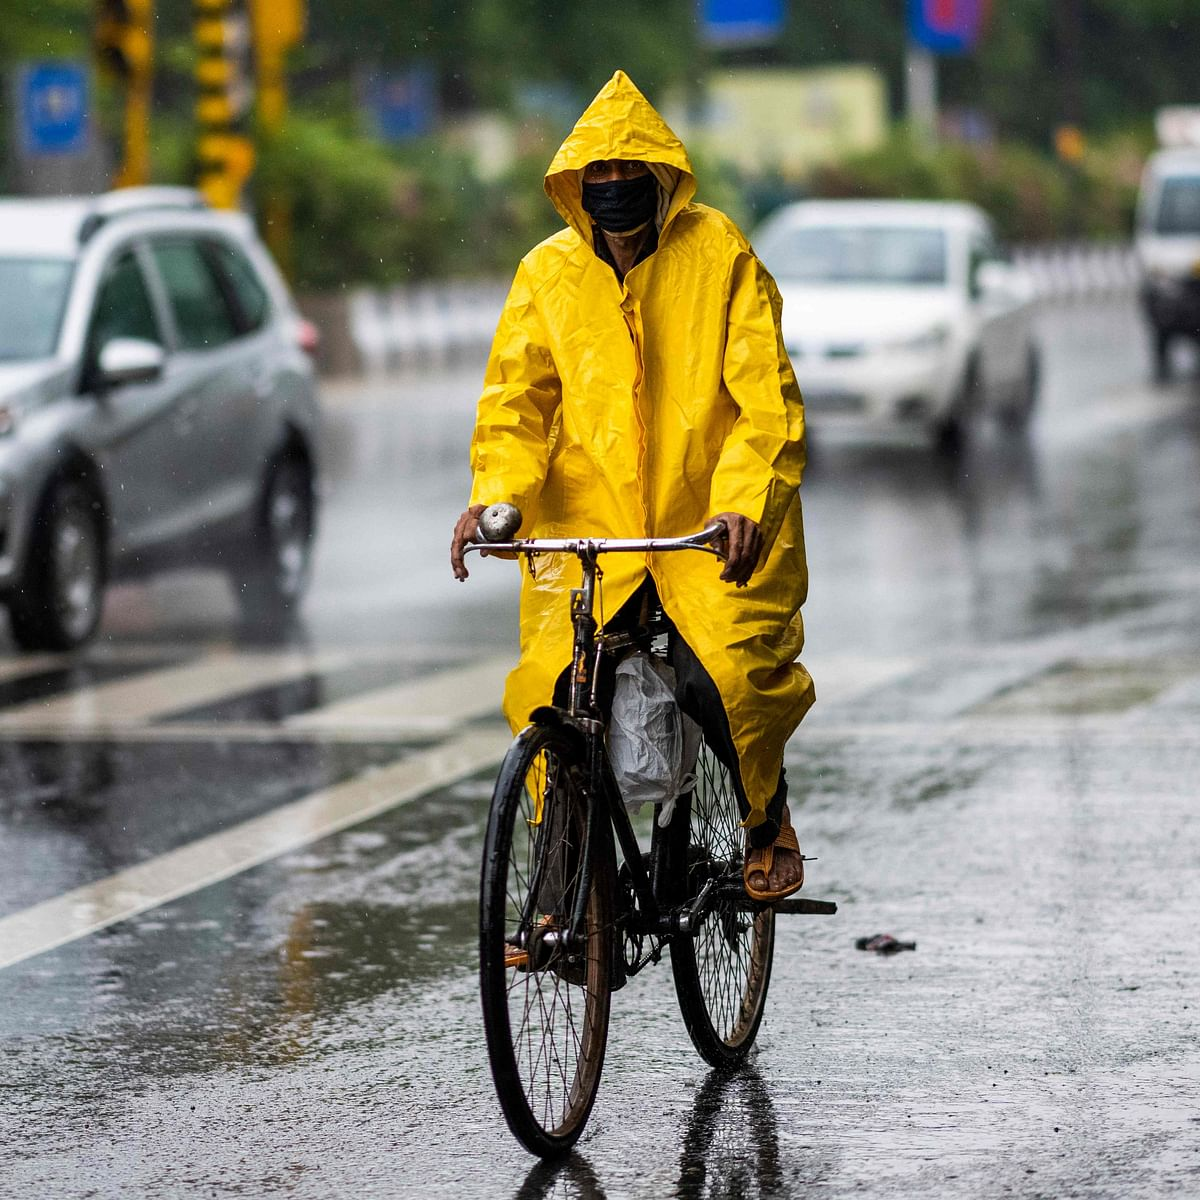 IMD predicts thunderstorm with light to moderate rain in Delhi-NCR, UP, Haryana